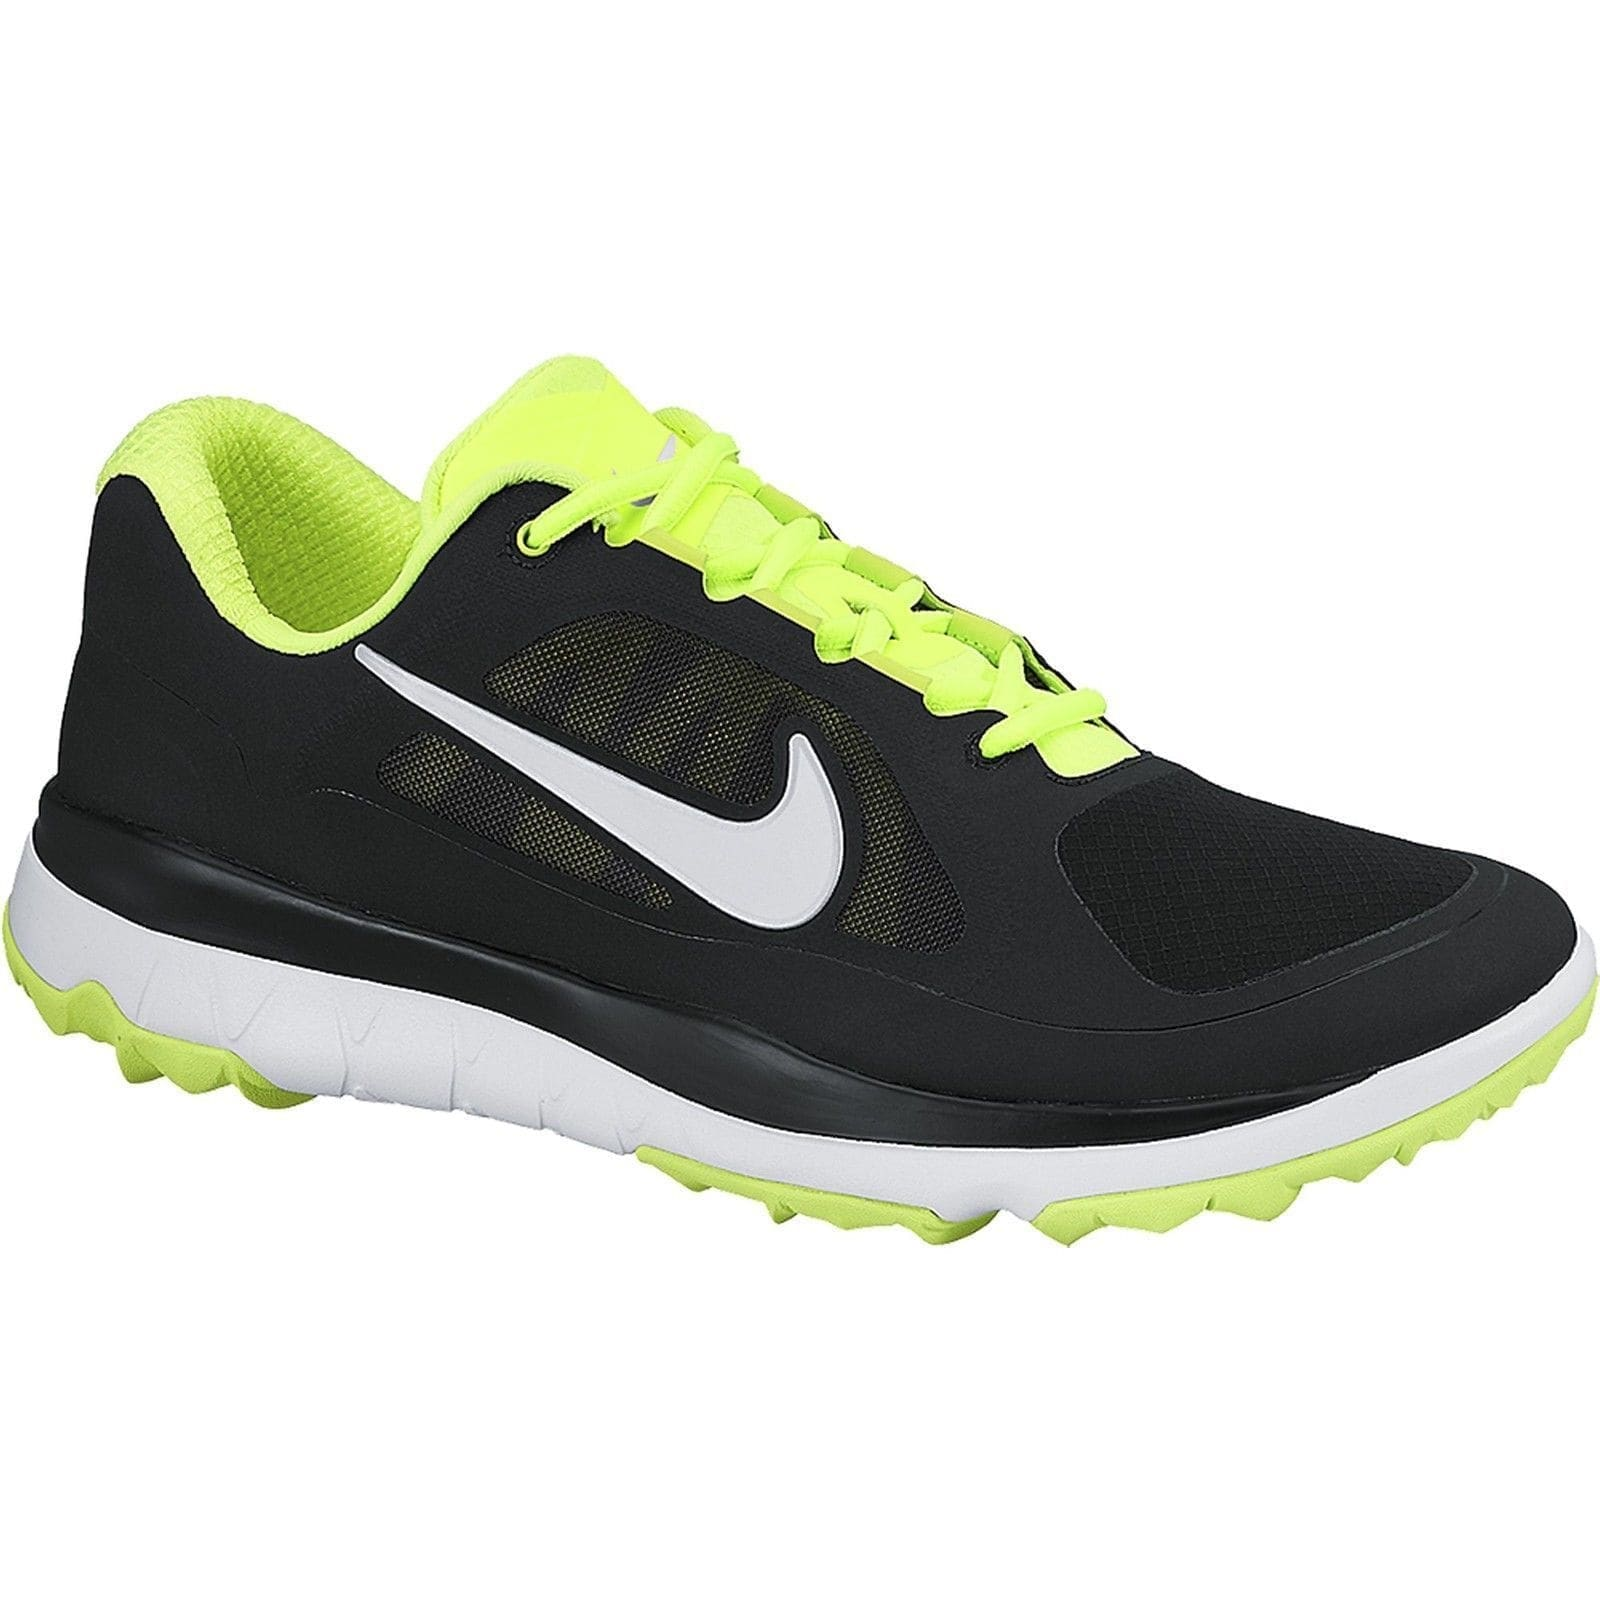 outlet store sale 58d99 a004d Shop Nike Men s FI Impact Black Volt White Golf Shoes 611510-007 - Free  Shipping Today - Overstock - 19748354